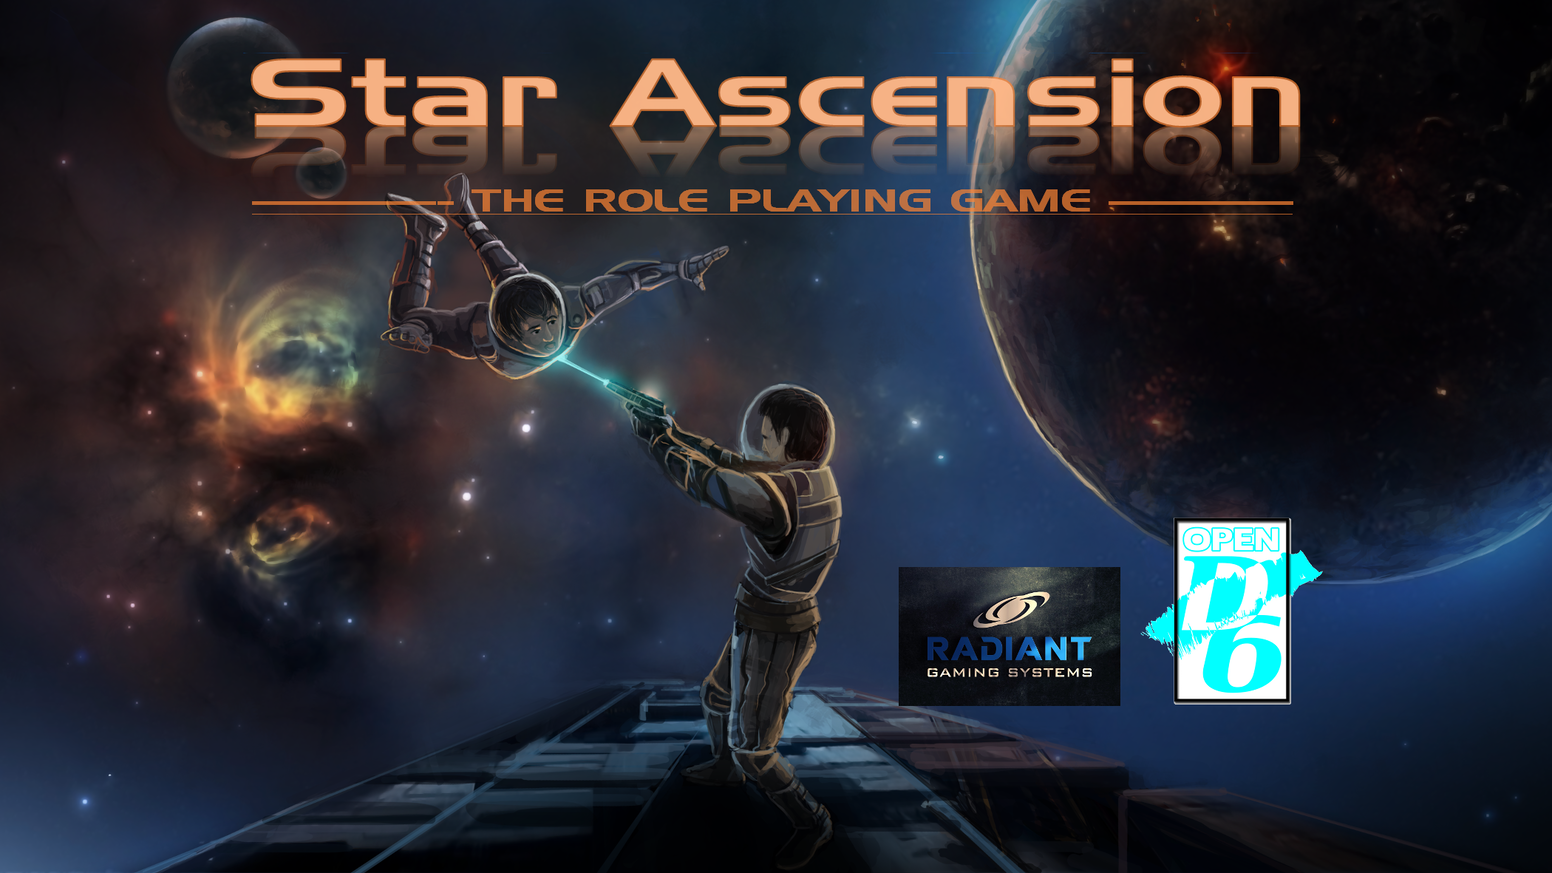 Star Ascension - A gritty sci-fi RPG of exploration, adventure, danger and interstellar war in Open D6